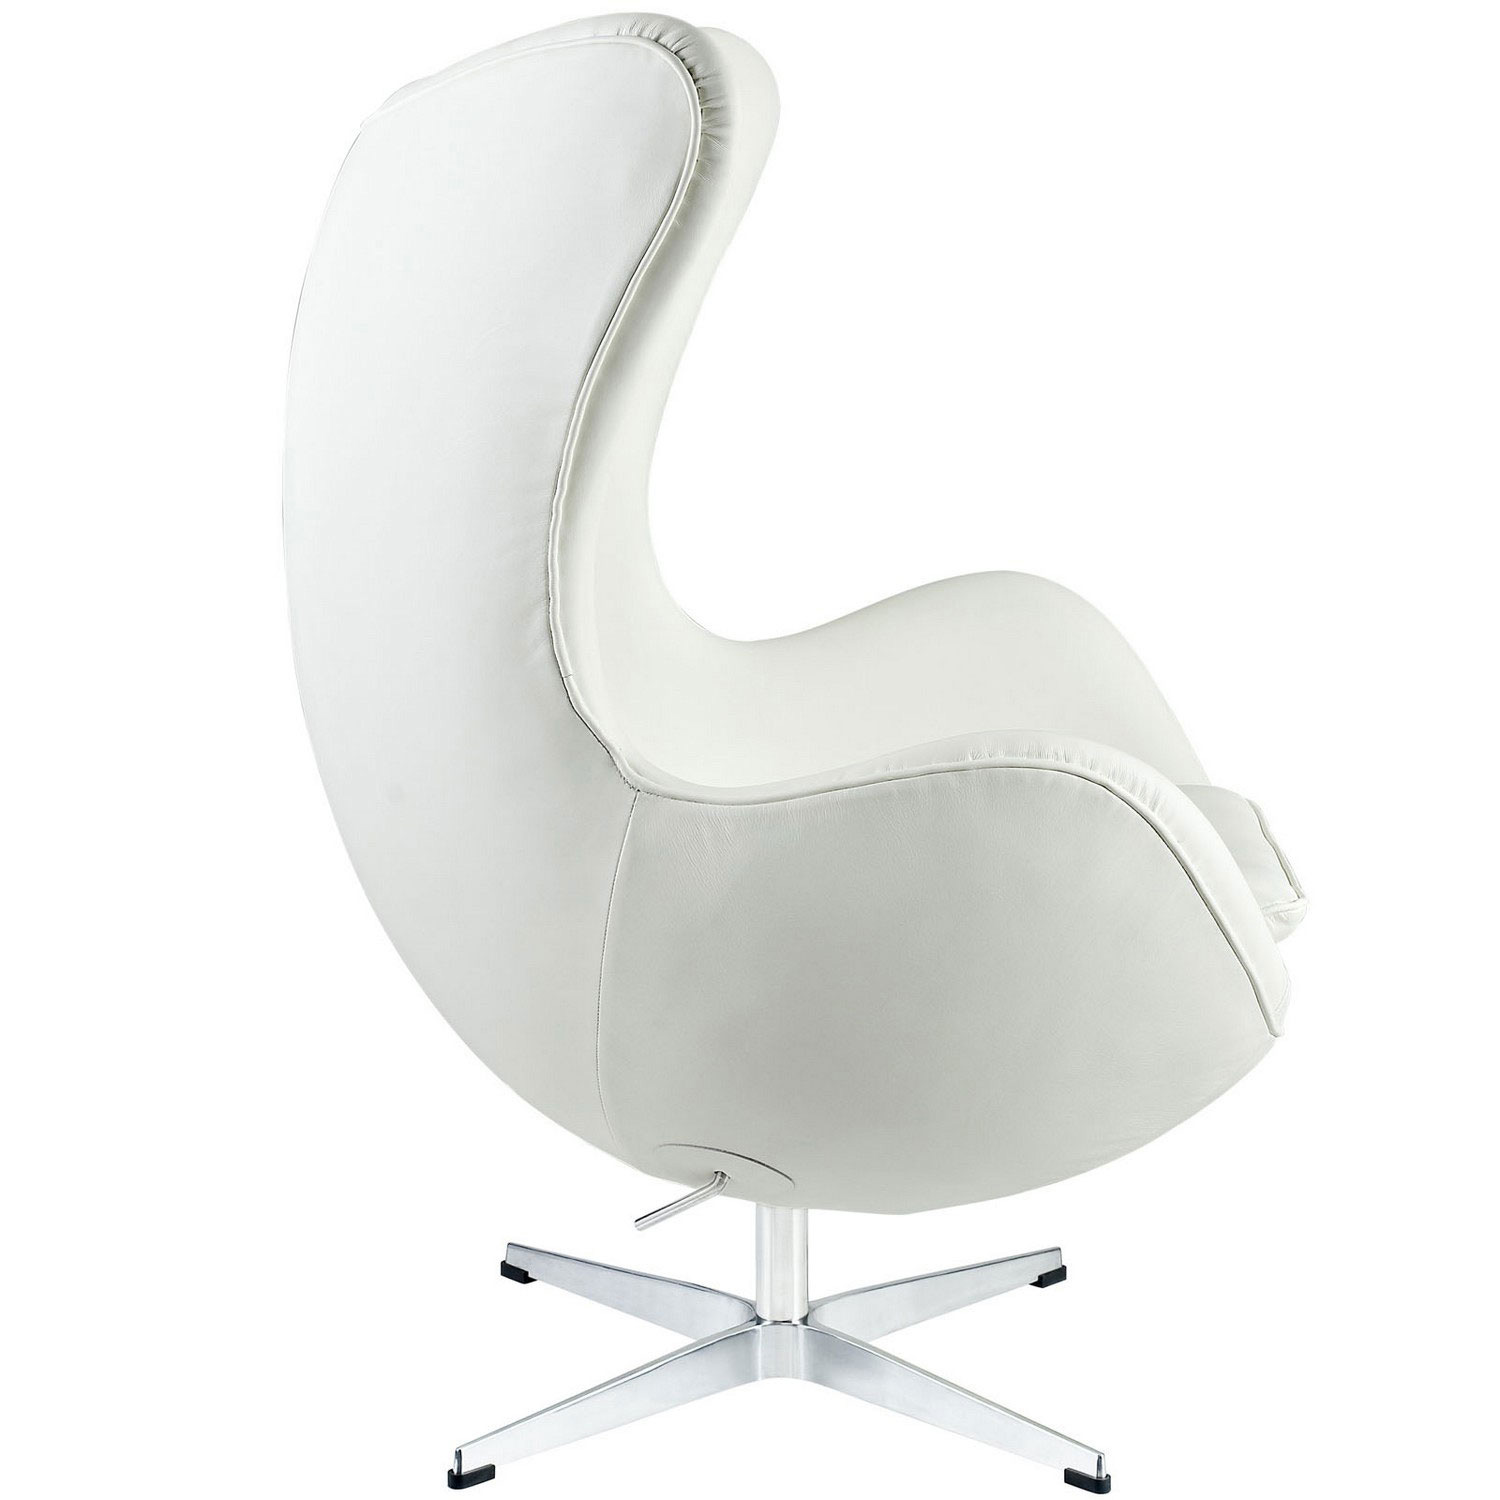 Modway Glove Leather Lounge Chair   White